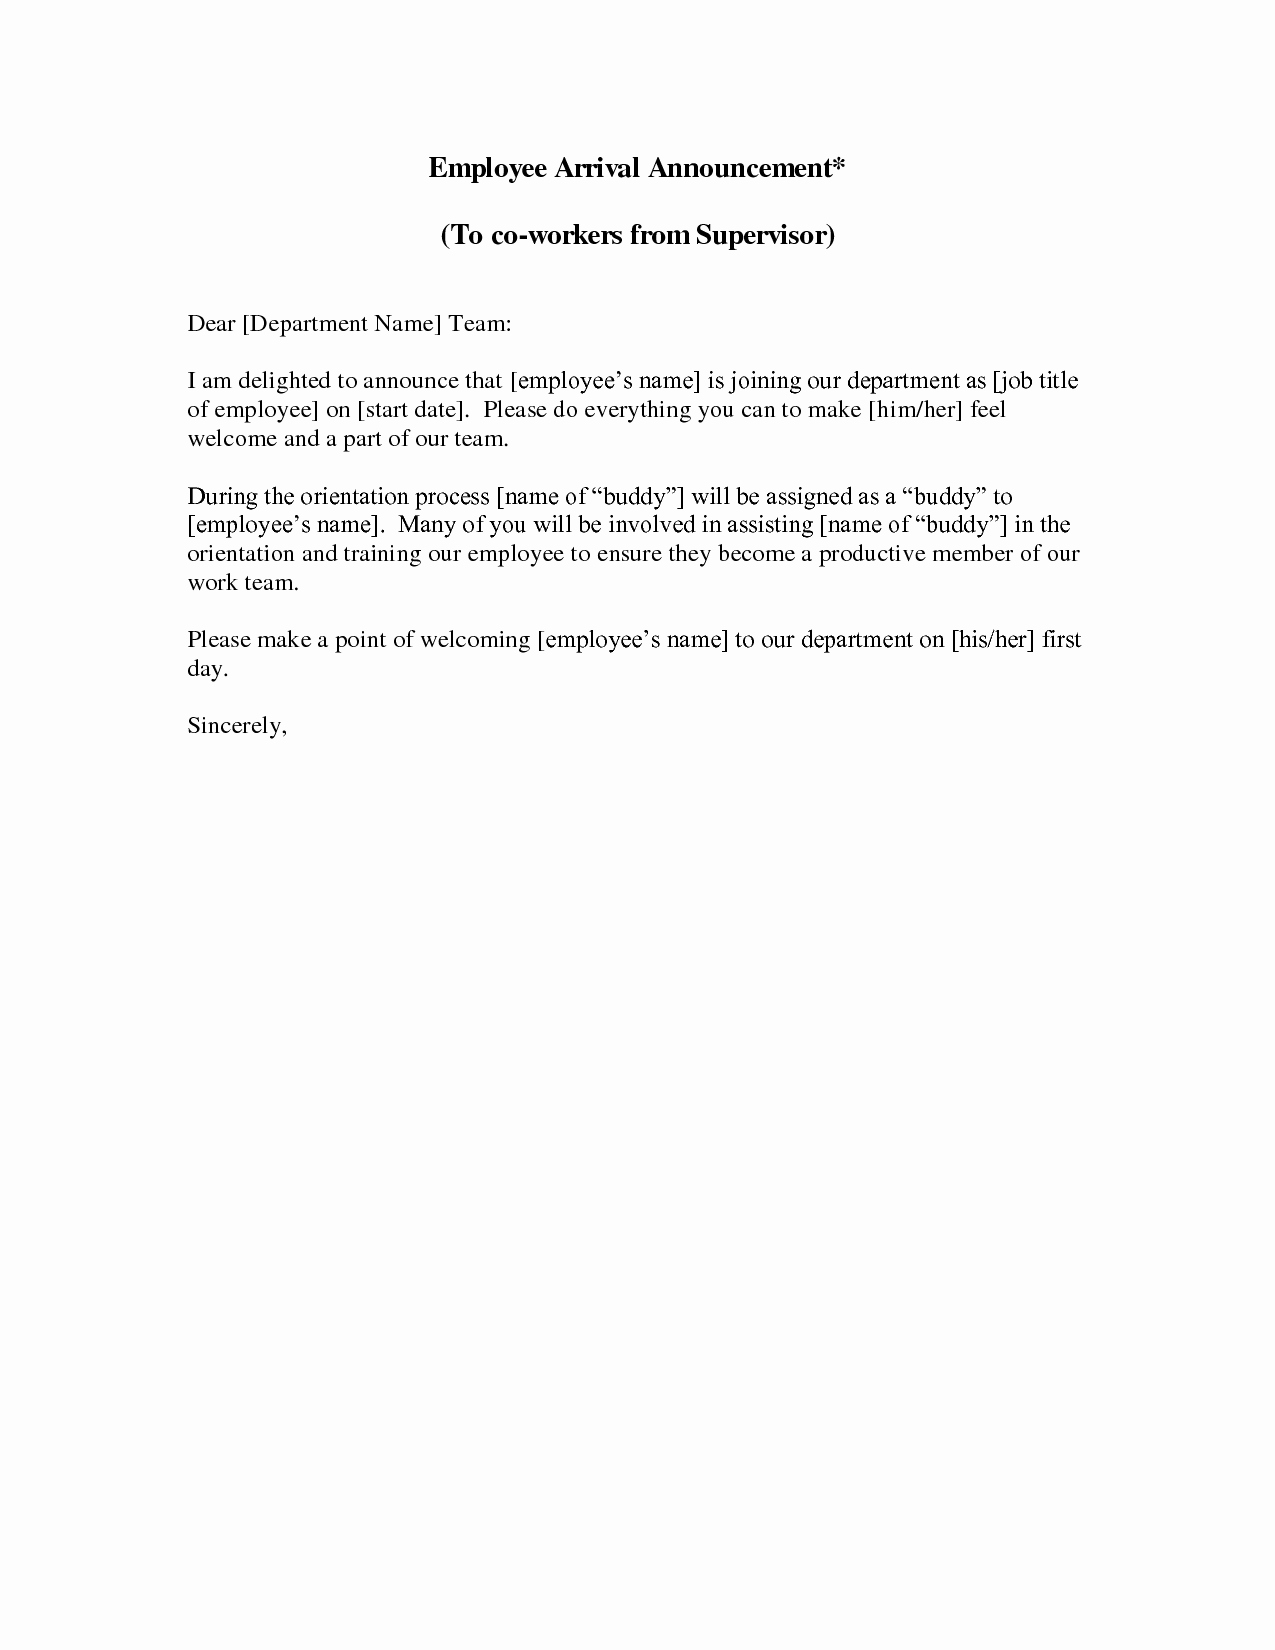 Employee Death Announcement Template Awesome Announcements Letters On Pinterest